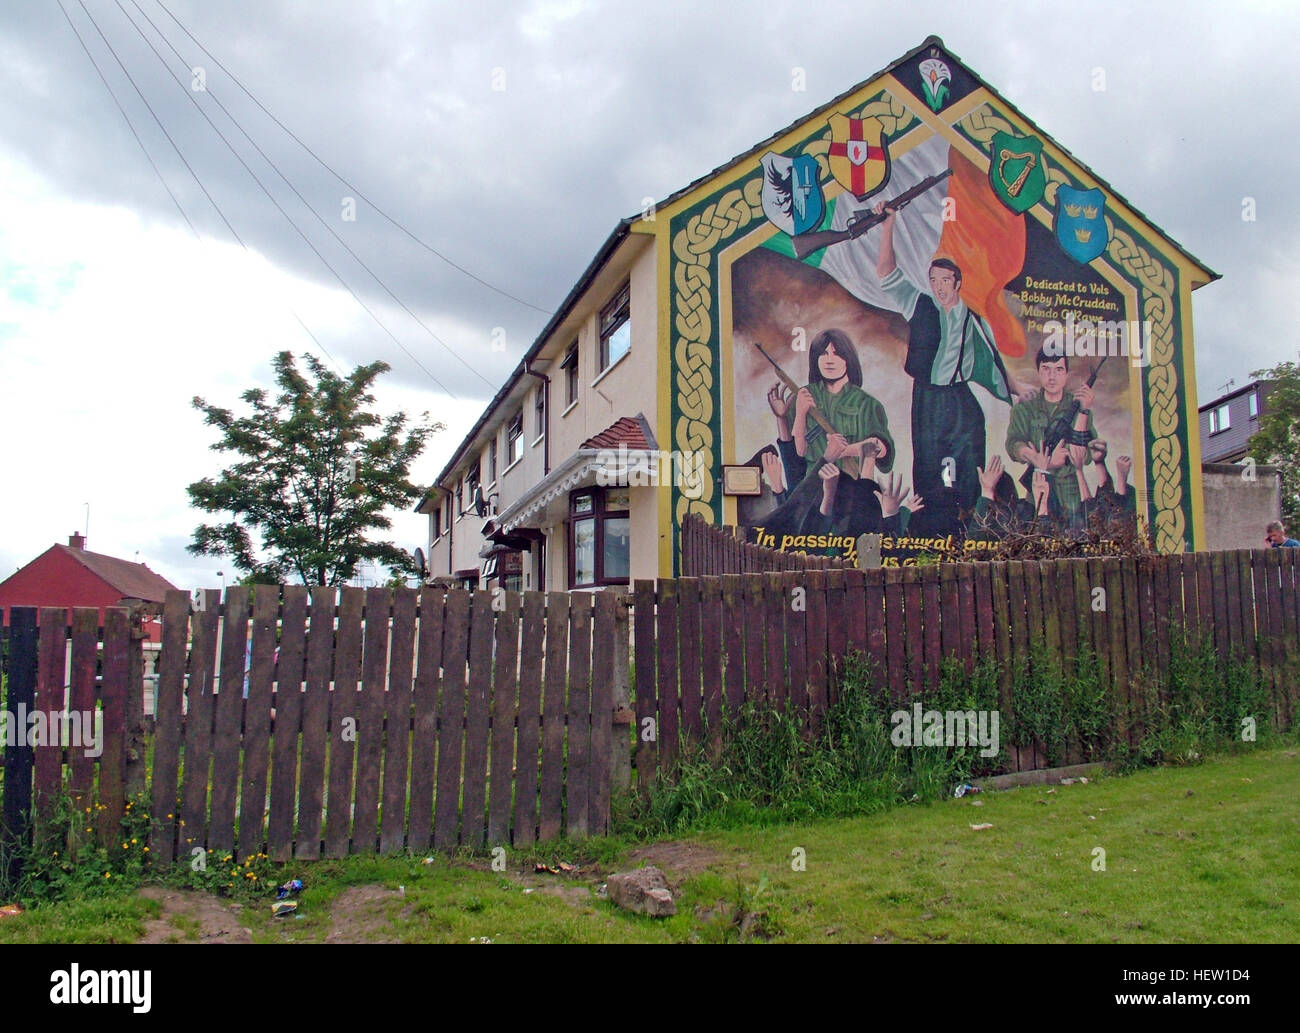 Belfast Falls Rd Republican Mural on council house gable end - Stock Image